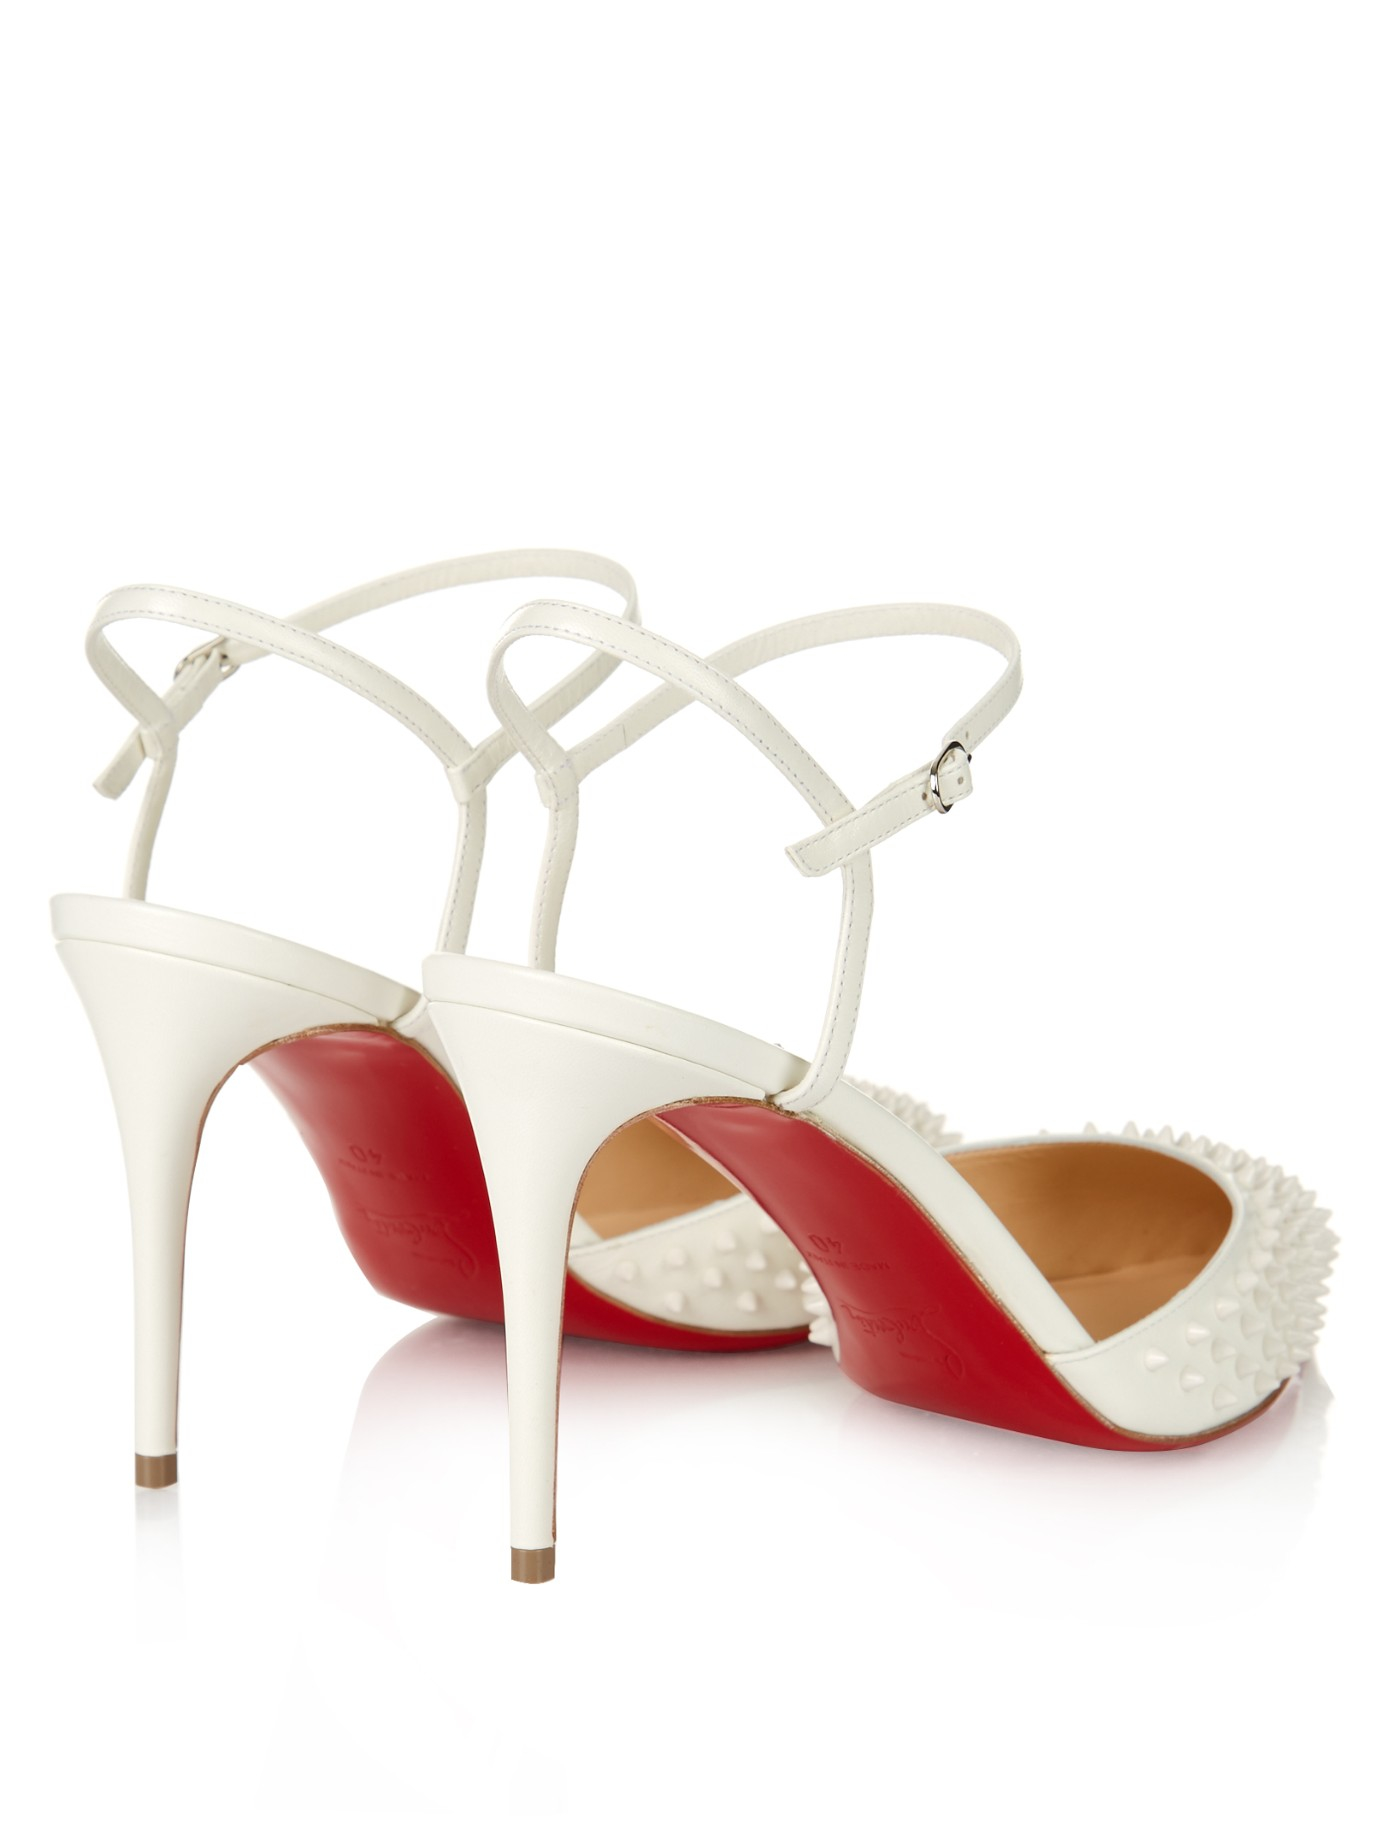 Christian louboutin Baiea 85mm Spike-embellished Pumps in White | Lyst